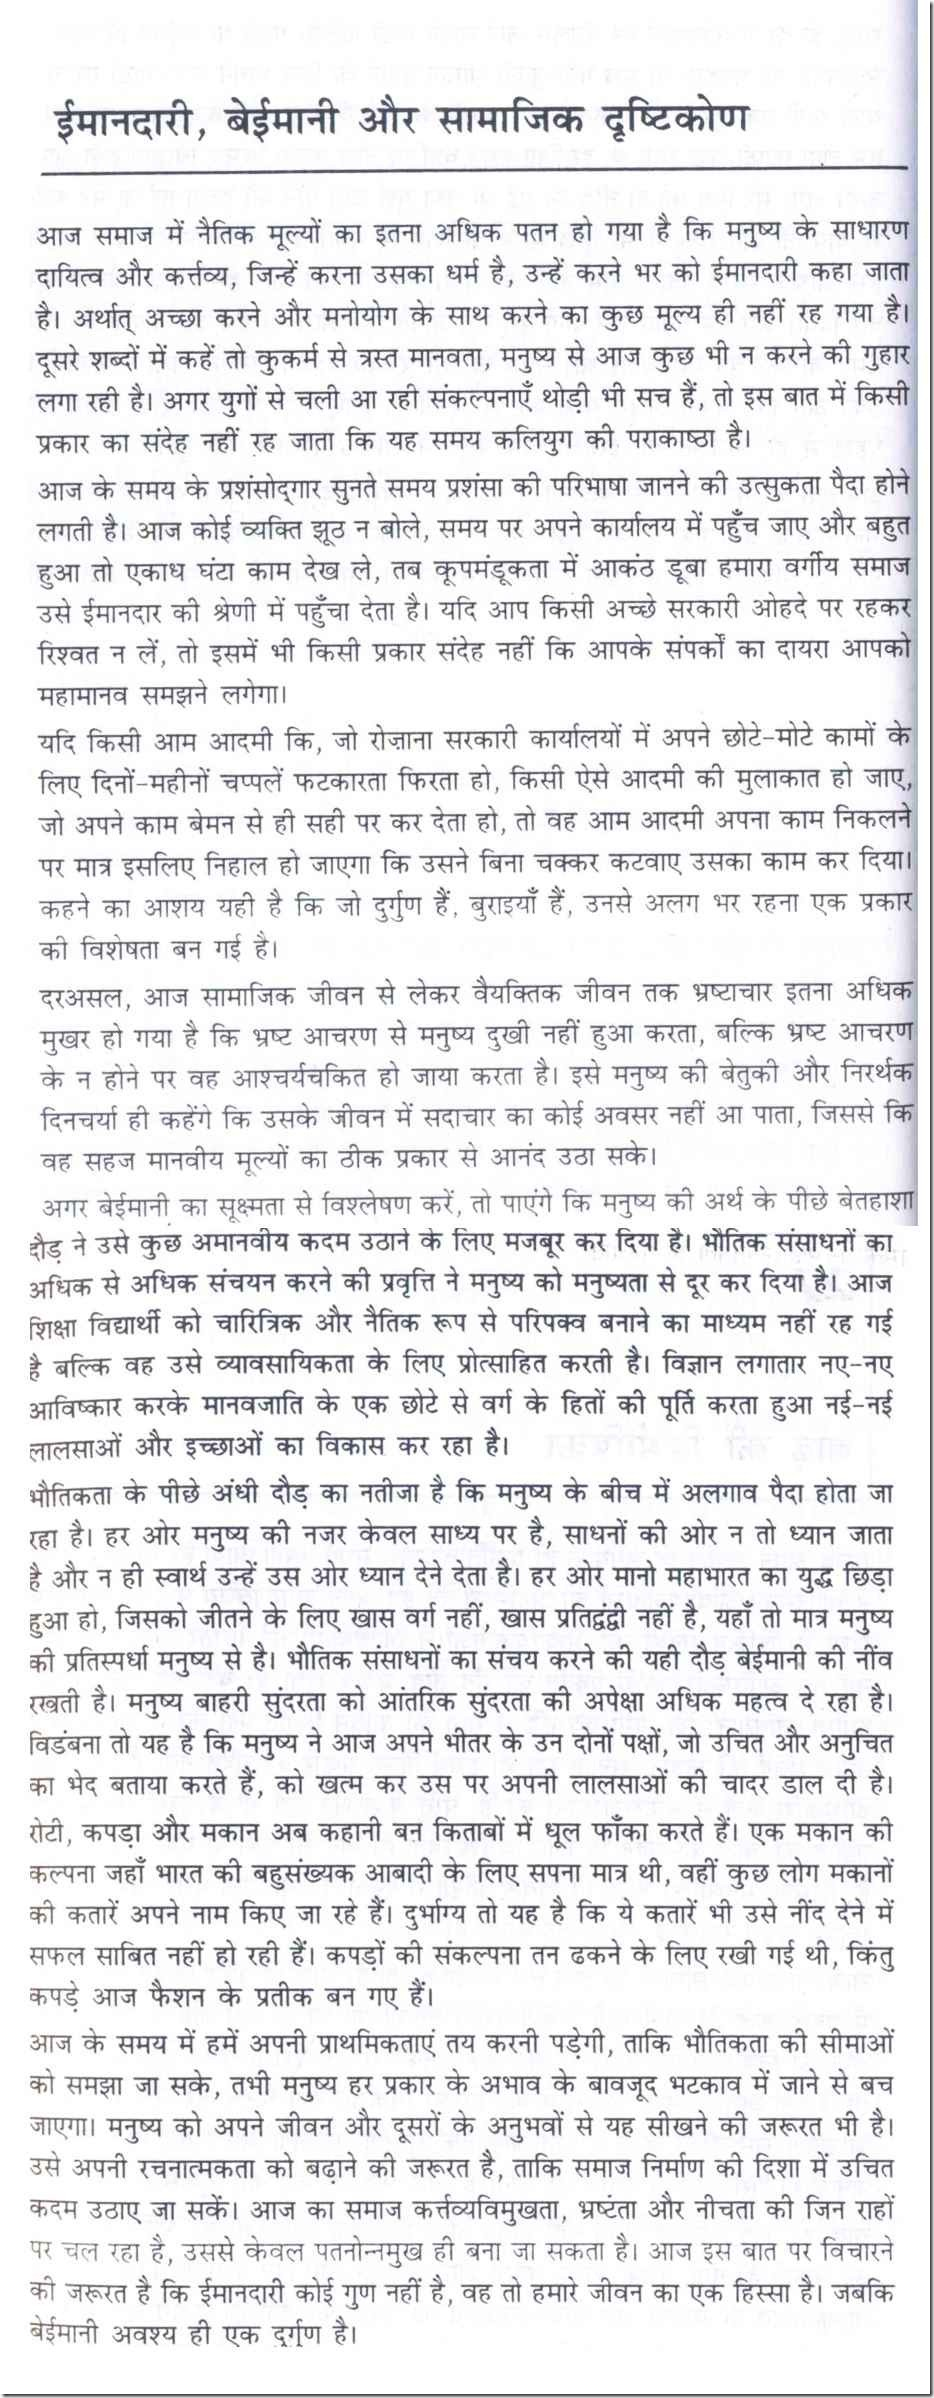 003 Essay Example 10026 Thumb Of Astounding Honesty Is The Only Way To Success On Best Policy For Class 8 In Hindi Full